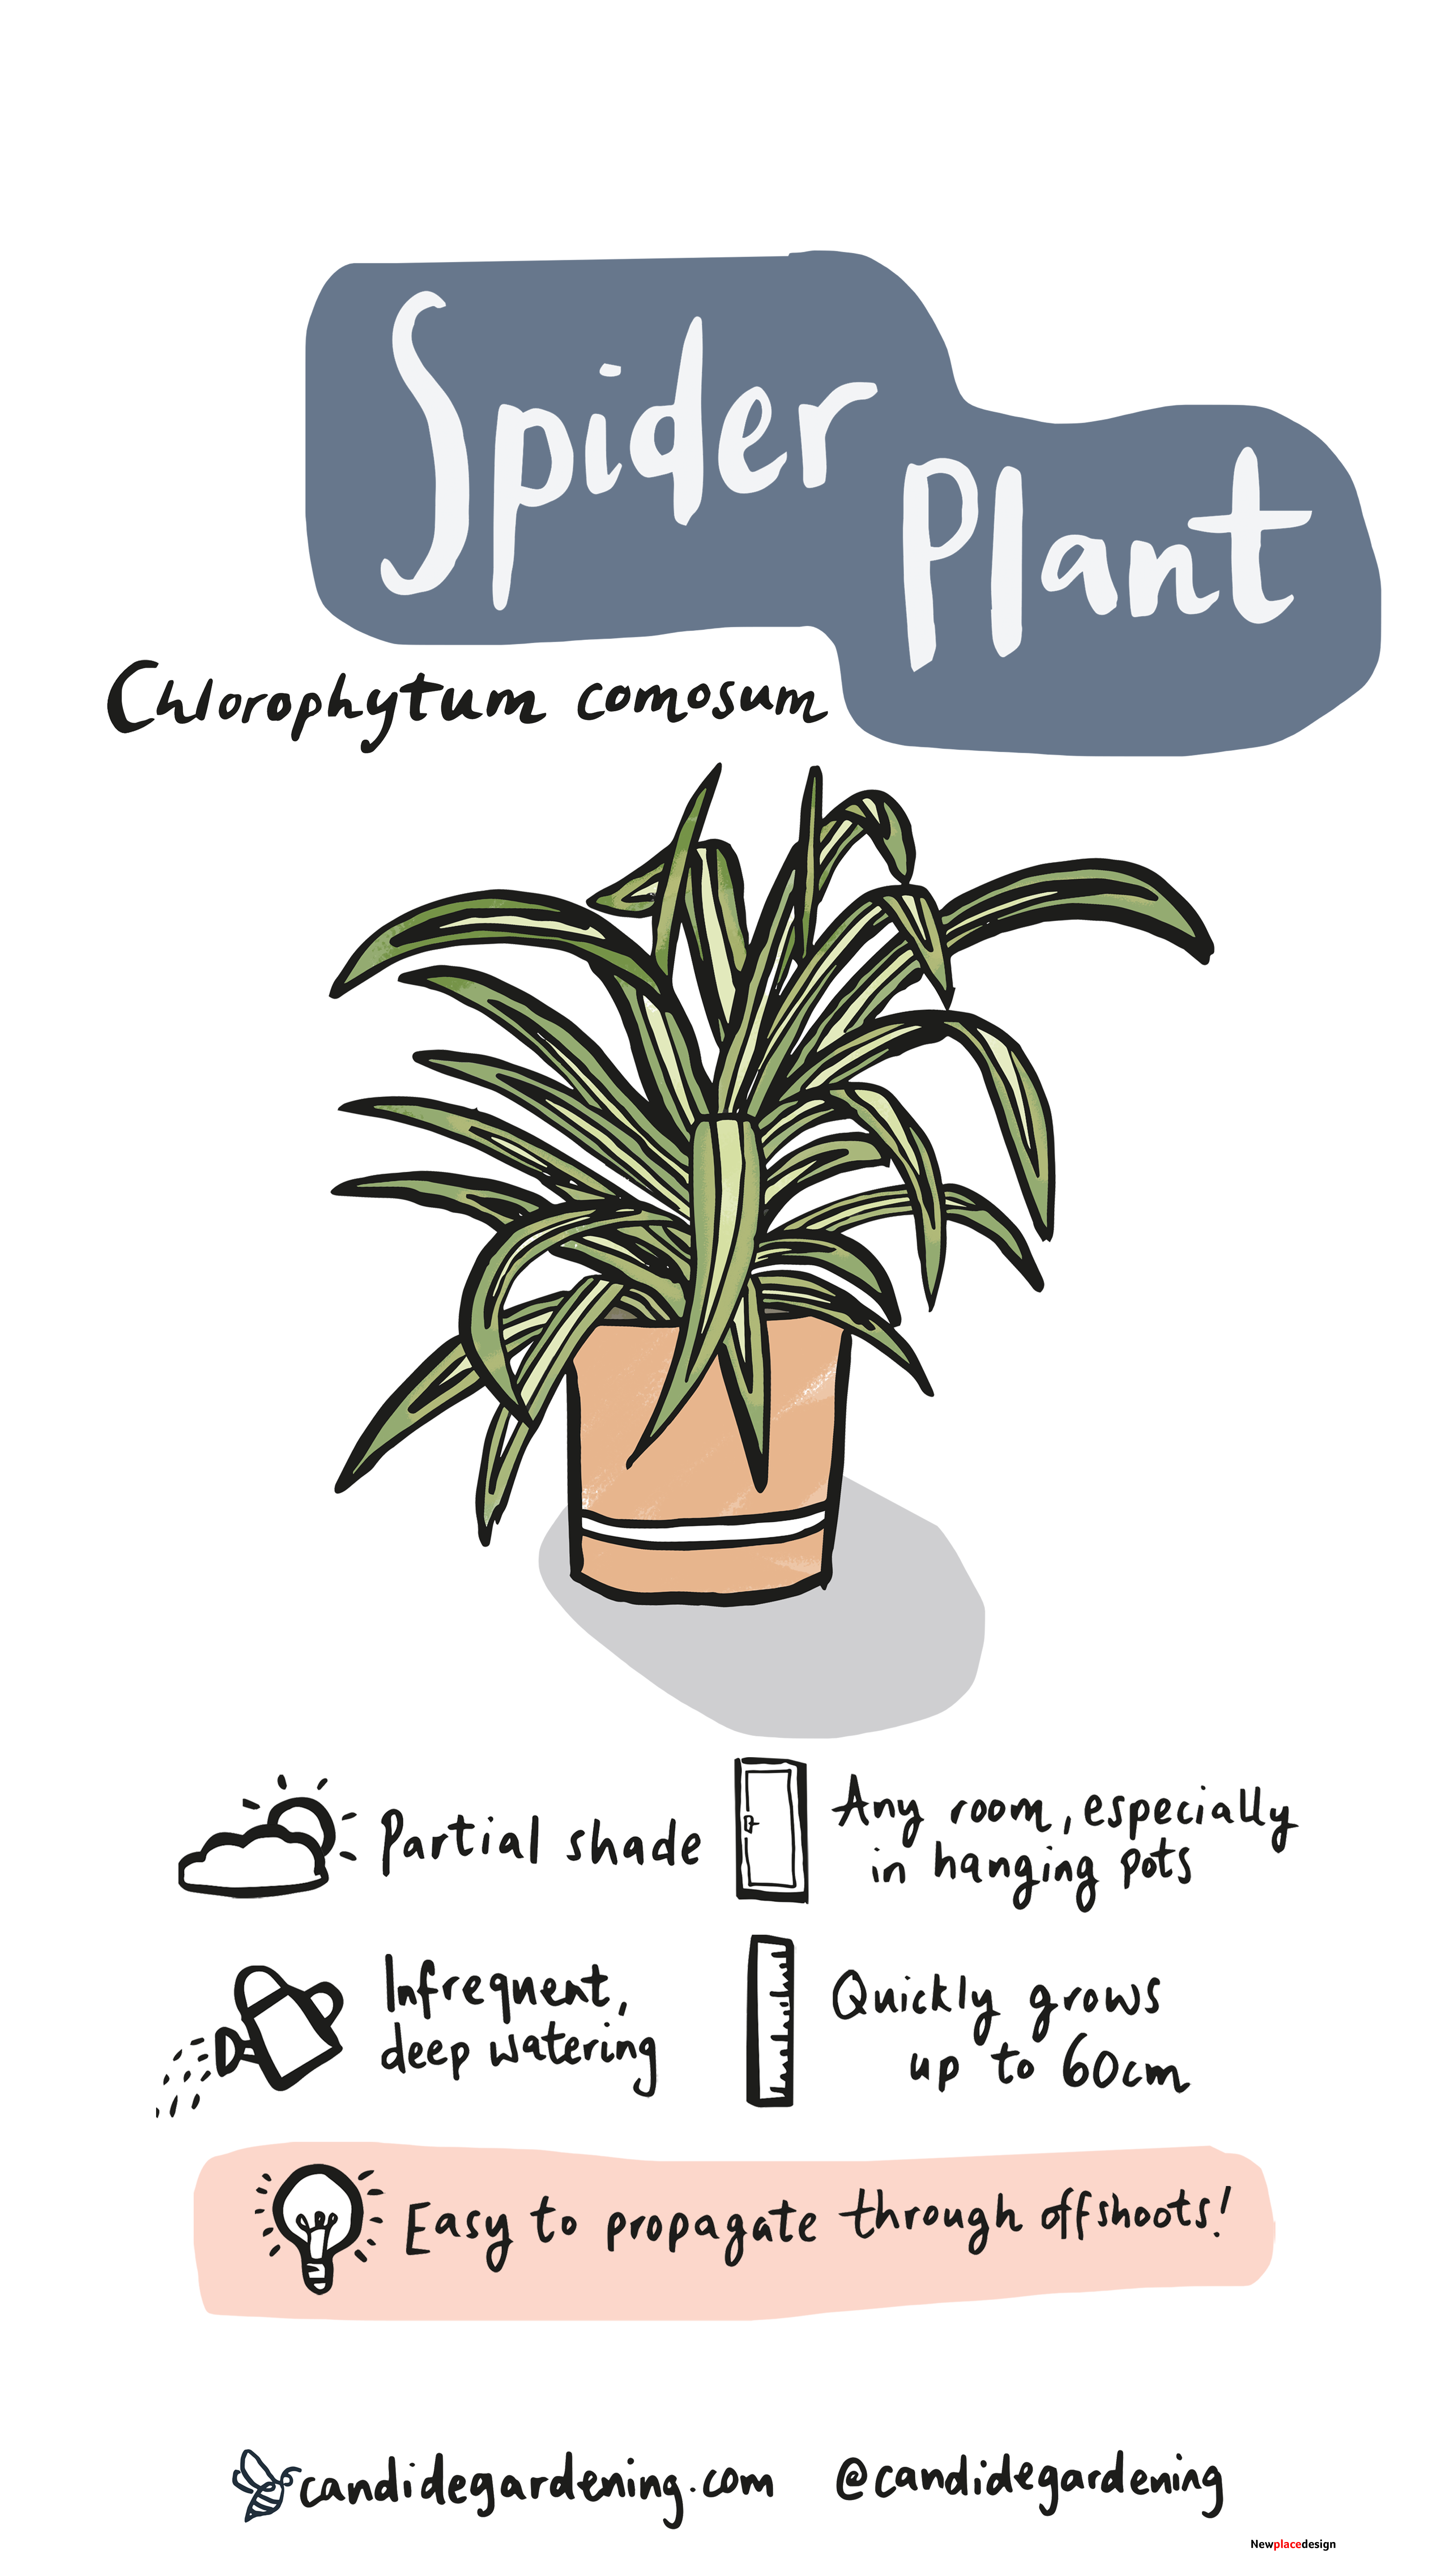 Spider Plants Gained Their Popularity From Their Incredibly Easy-Going Nature